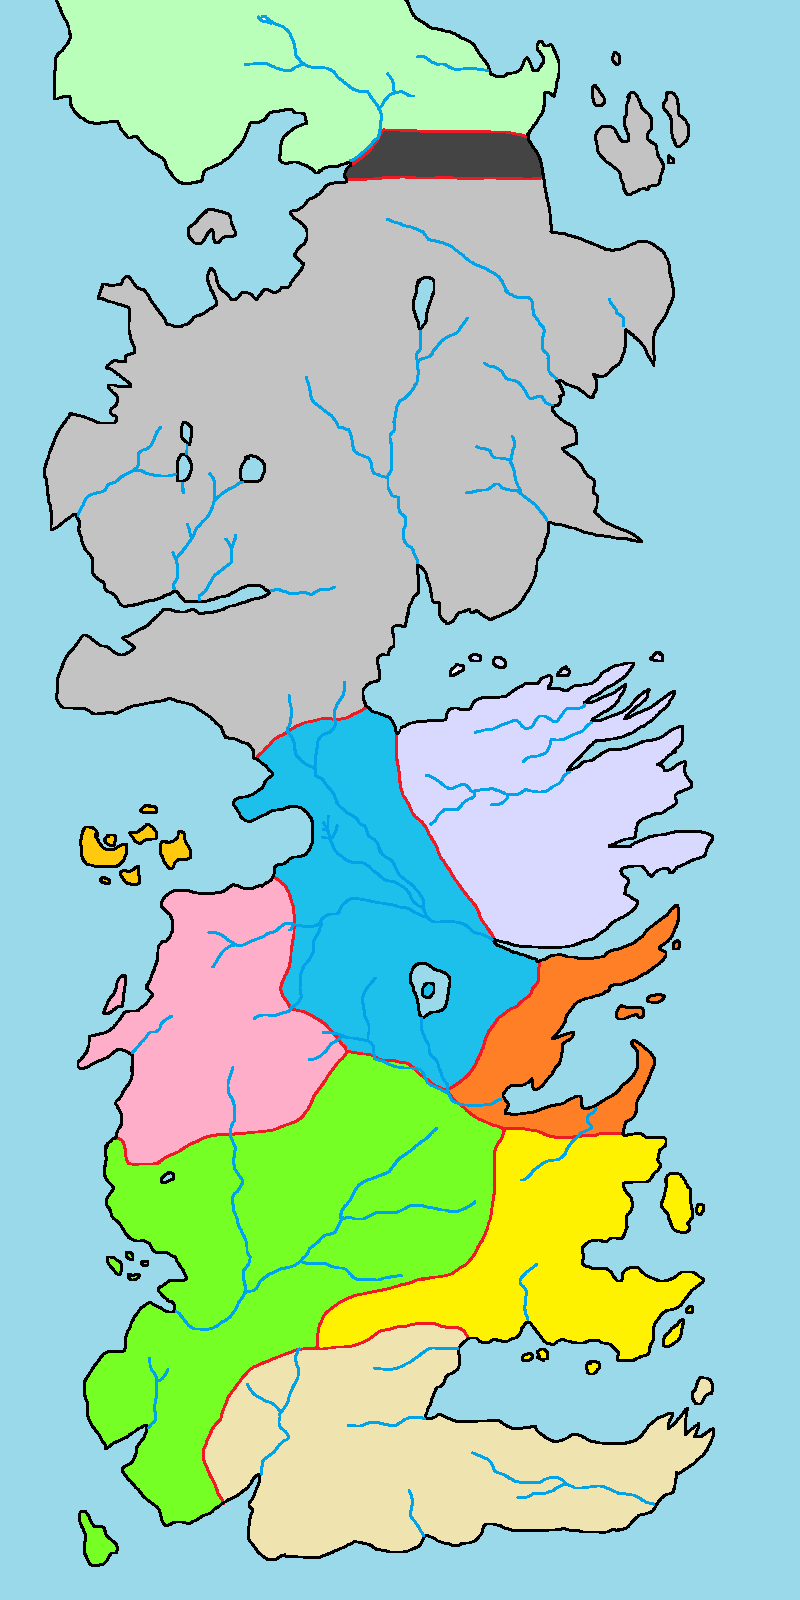 map of the game thrones kingdoms with Fantasy And Alien Blank Basemaps Thread on Westeros Full Detail Map Creation in addition Game Of Thrones Google Maps Style further 5252 Mapas Imaginarios O No Tanto MLLA RAZON 483564 in addition Fantasy And Alien Blank Basemaps Thread moreover Ireland Road Trip.